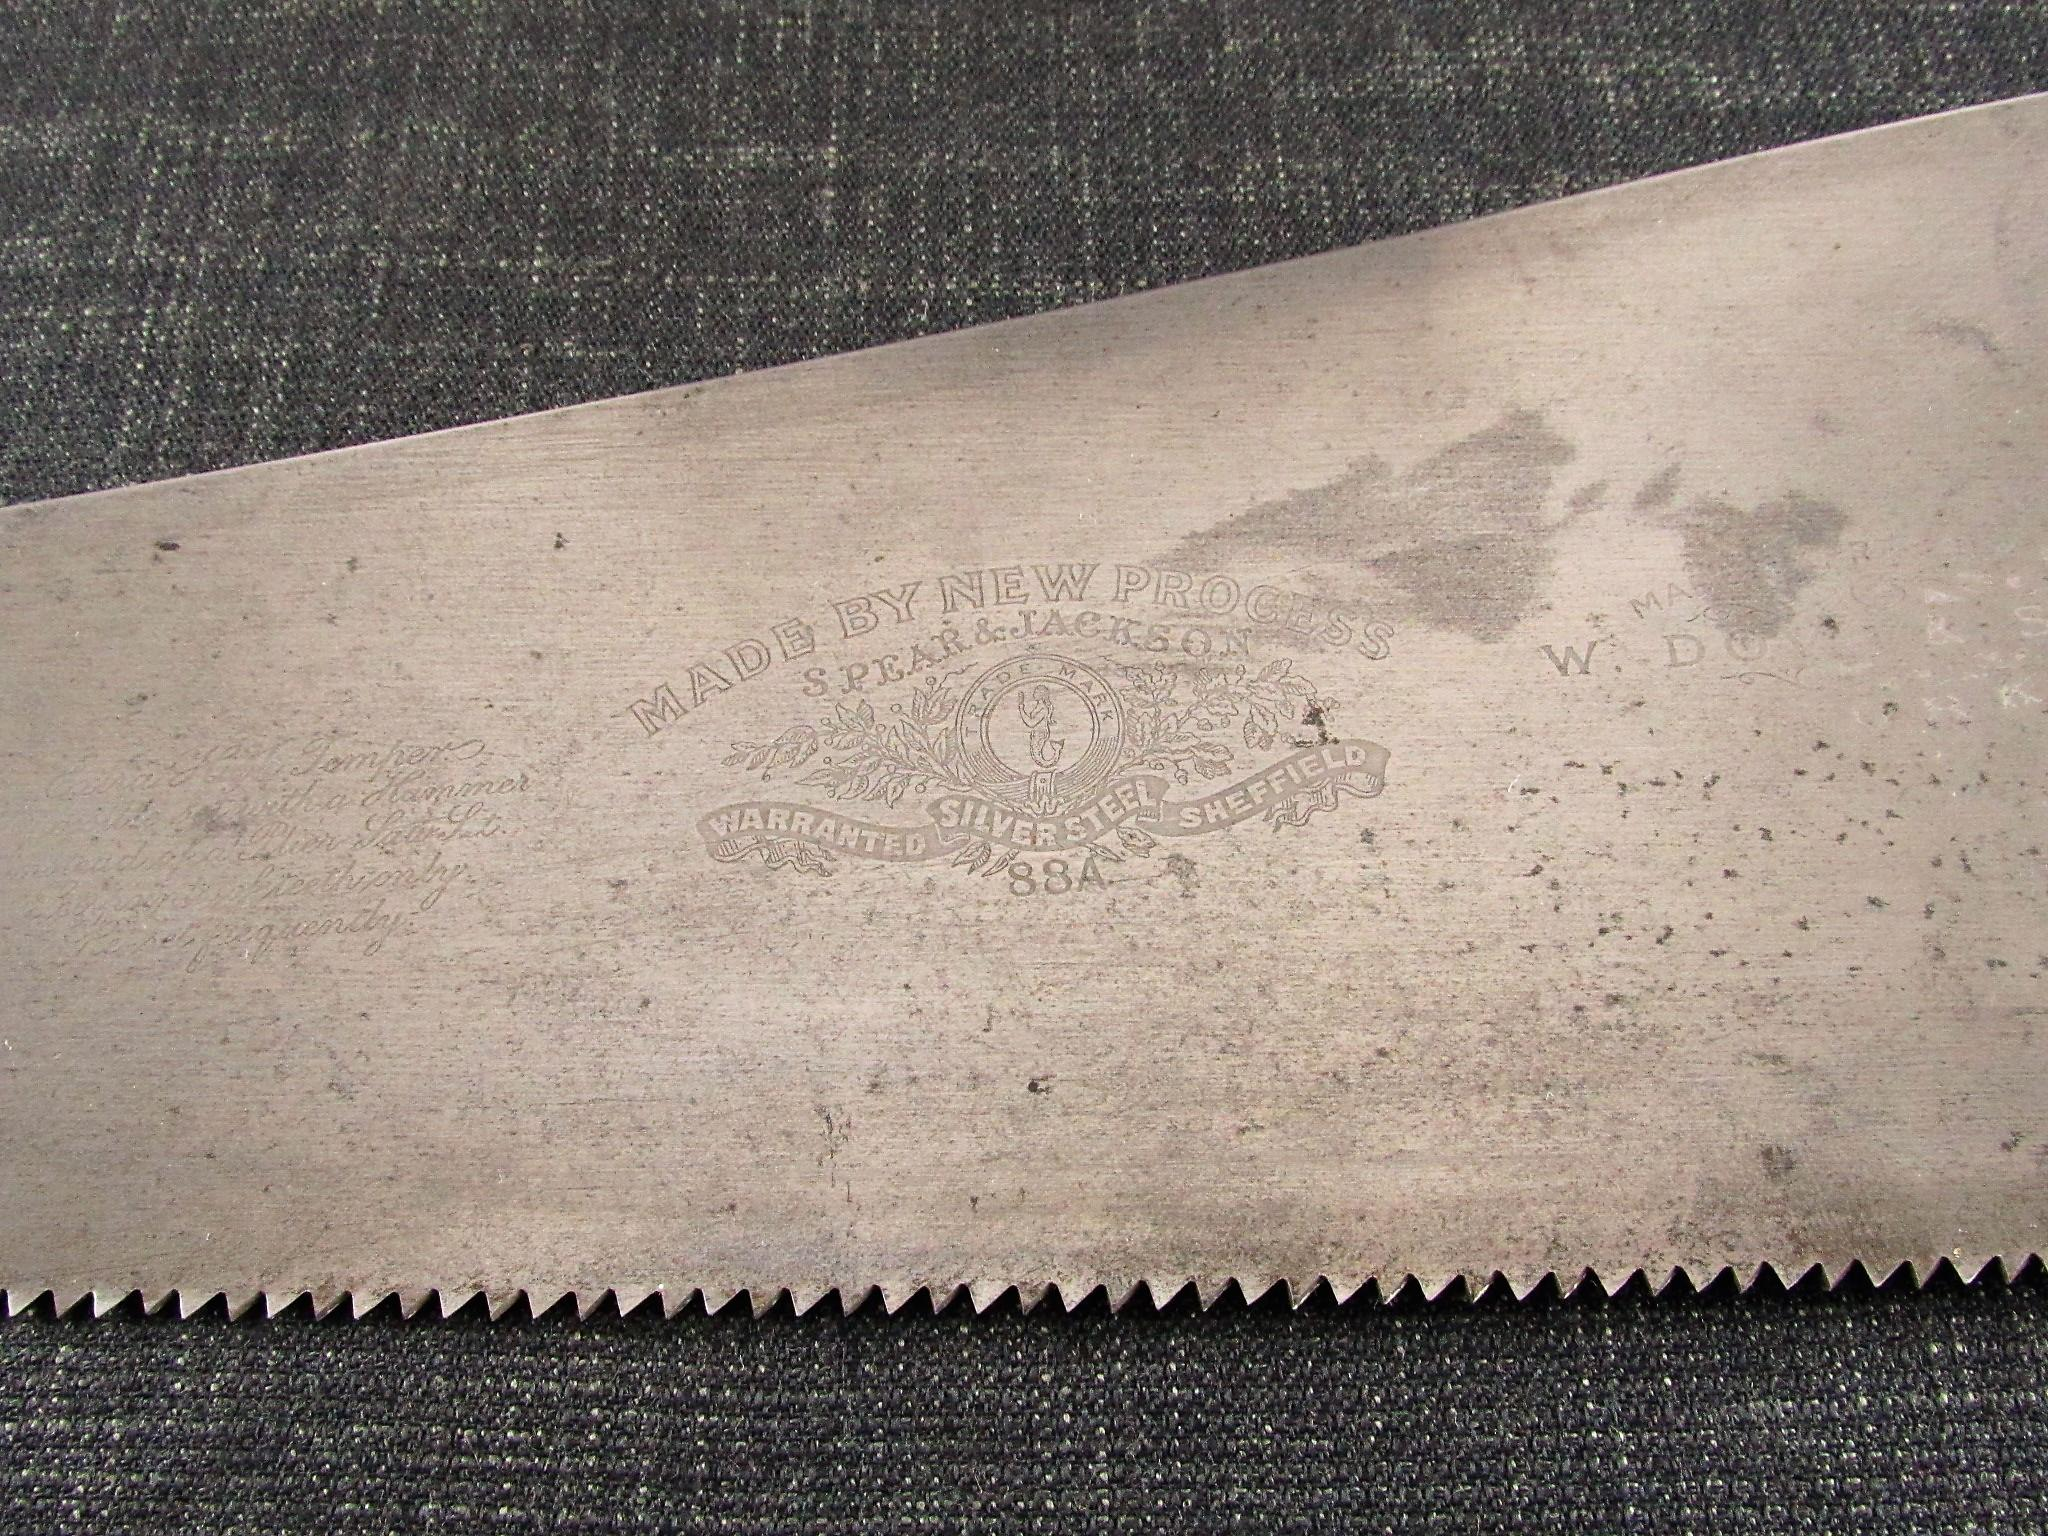 SPEAR & JACKSON 88 A Rip Cut Panel Saw for W DOVE & SONS - 26 inch Silver Steel